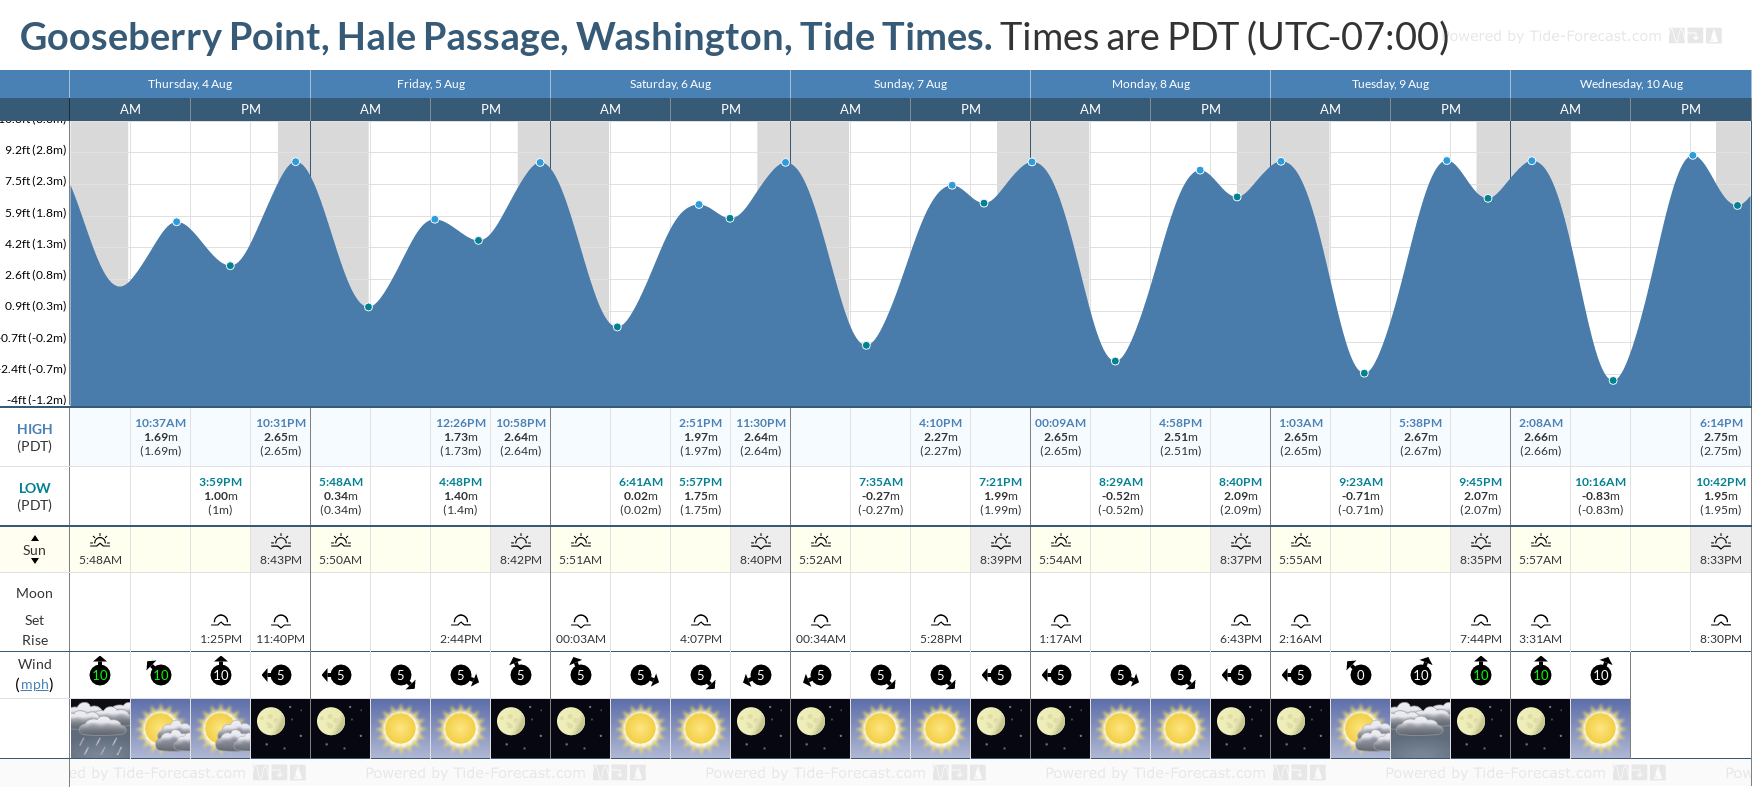 Gooseberry Point, Hale Passage, Washington Tide Chart including high and low tide tide times for the next 7 days